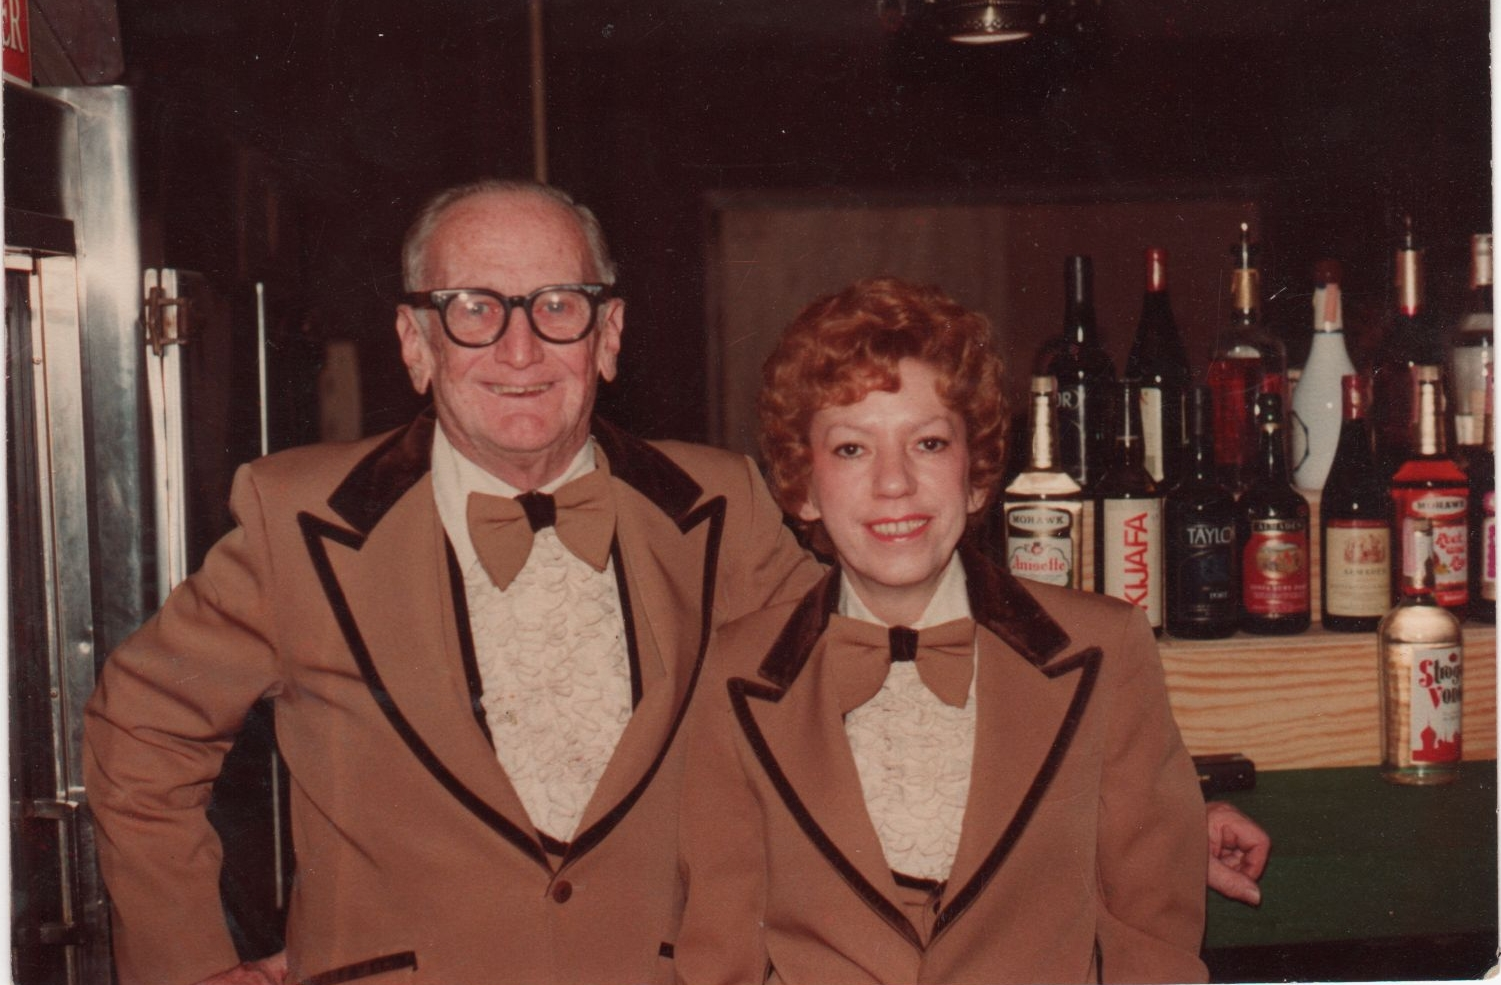 Aunt Bev with her brother-in-law, George (AKA Pops, my grandpa).